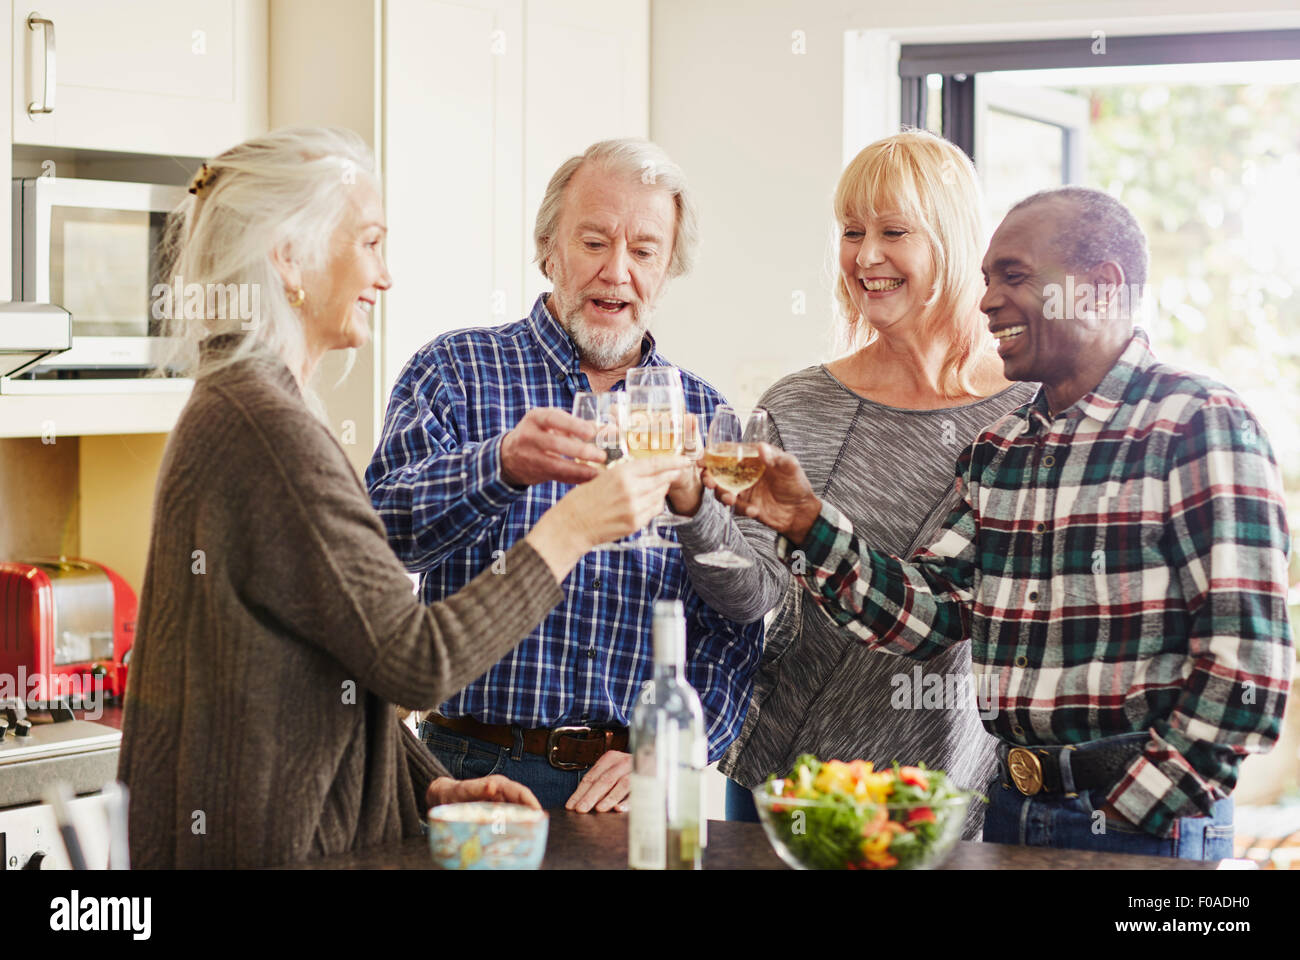 Senior friends toasting with wine in kitchen - Stock Image